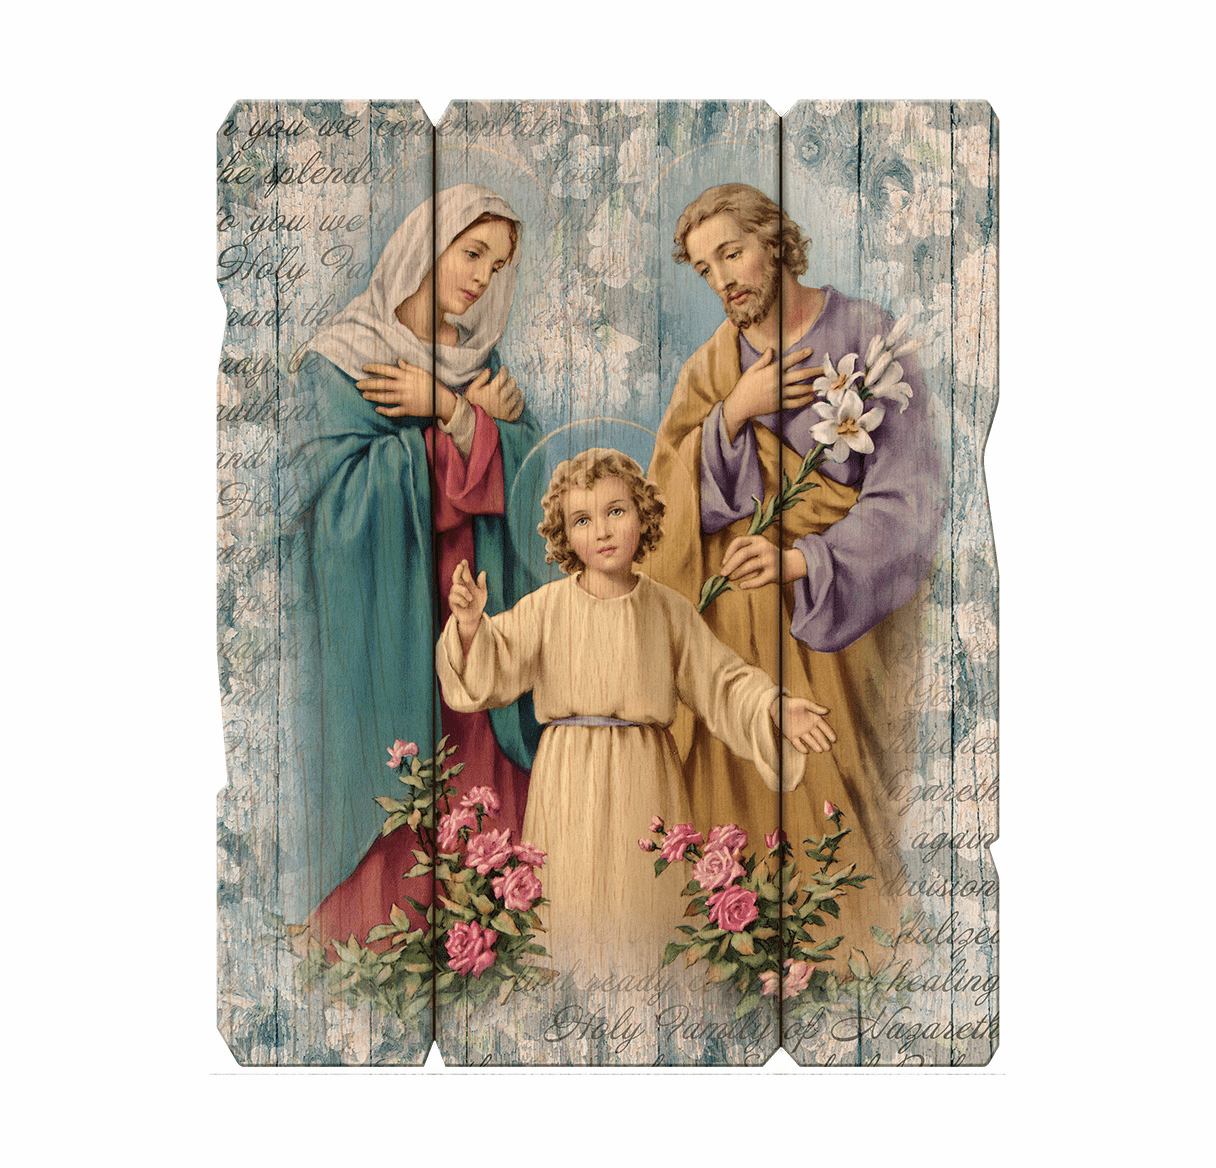 Holy Family Christian Pictures and Wall Plaques